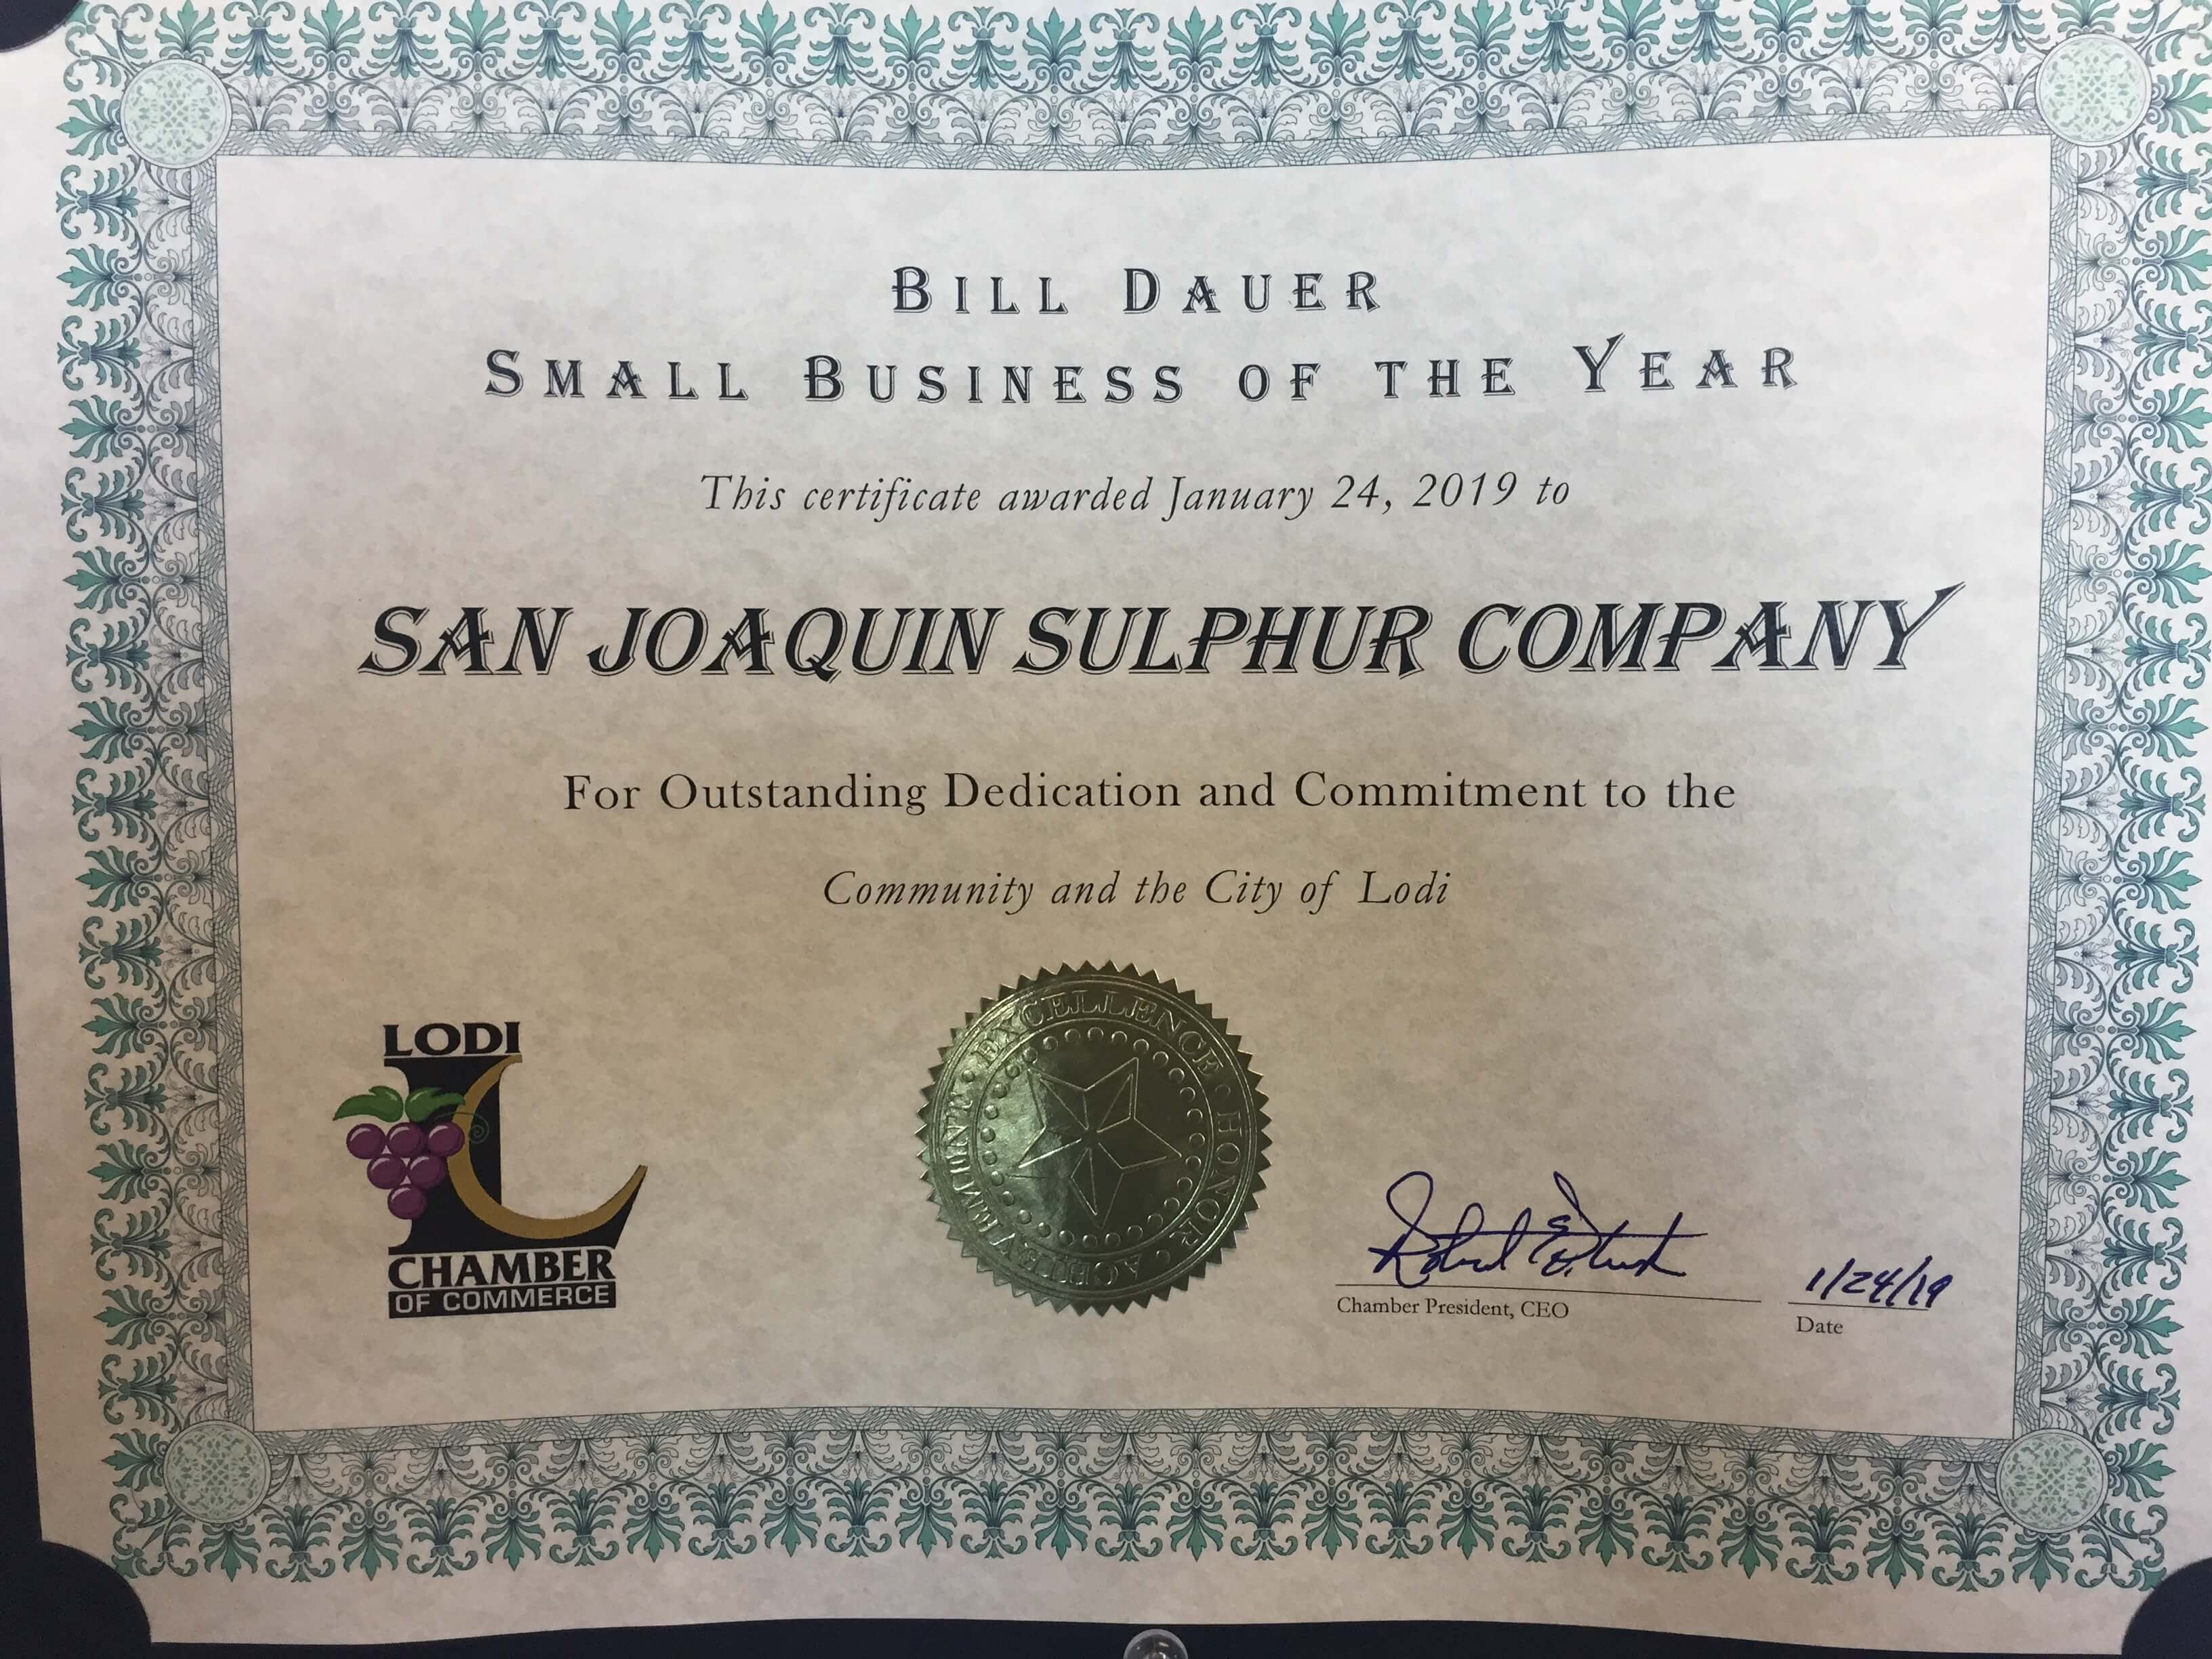 Awarded Small Business of the Year